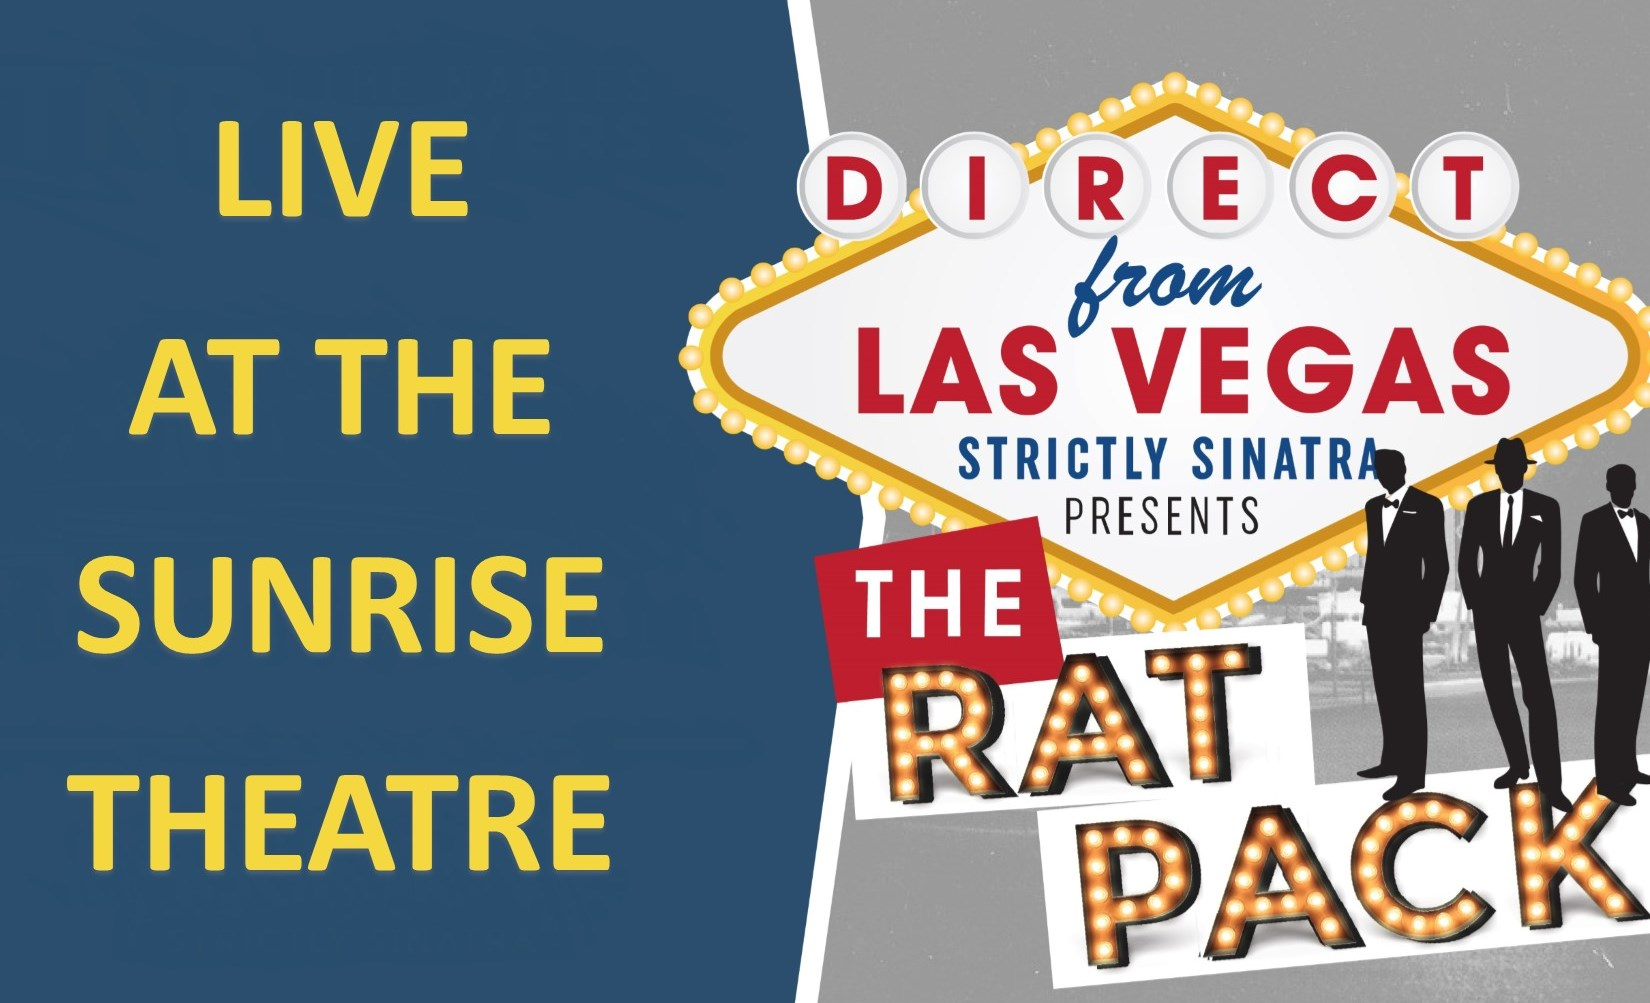 Direct From Las Vegas Strictly Sinatra Presents: